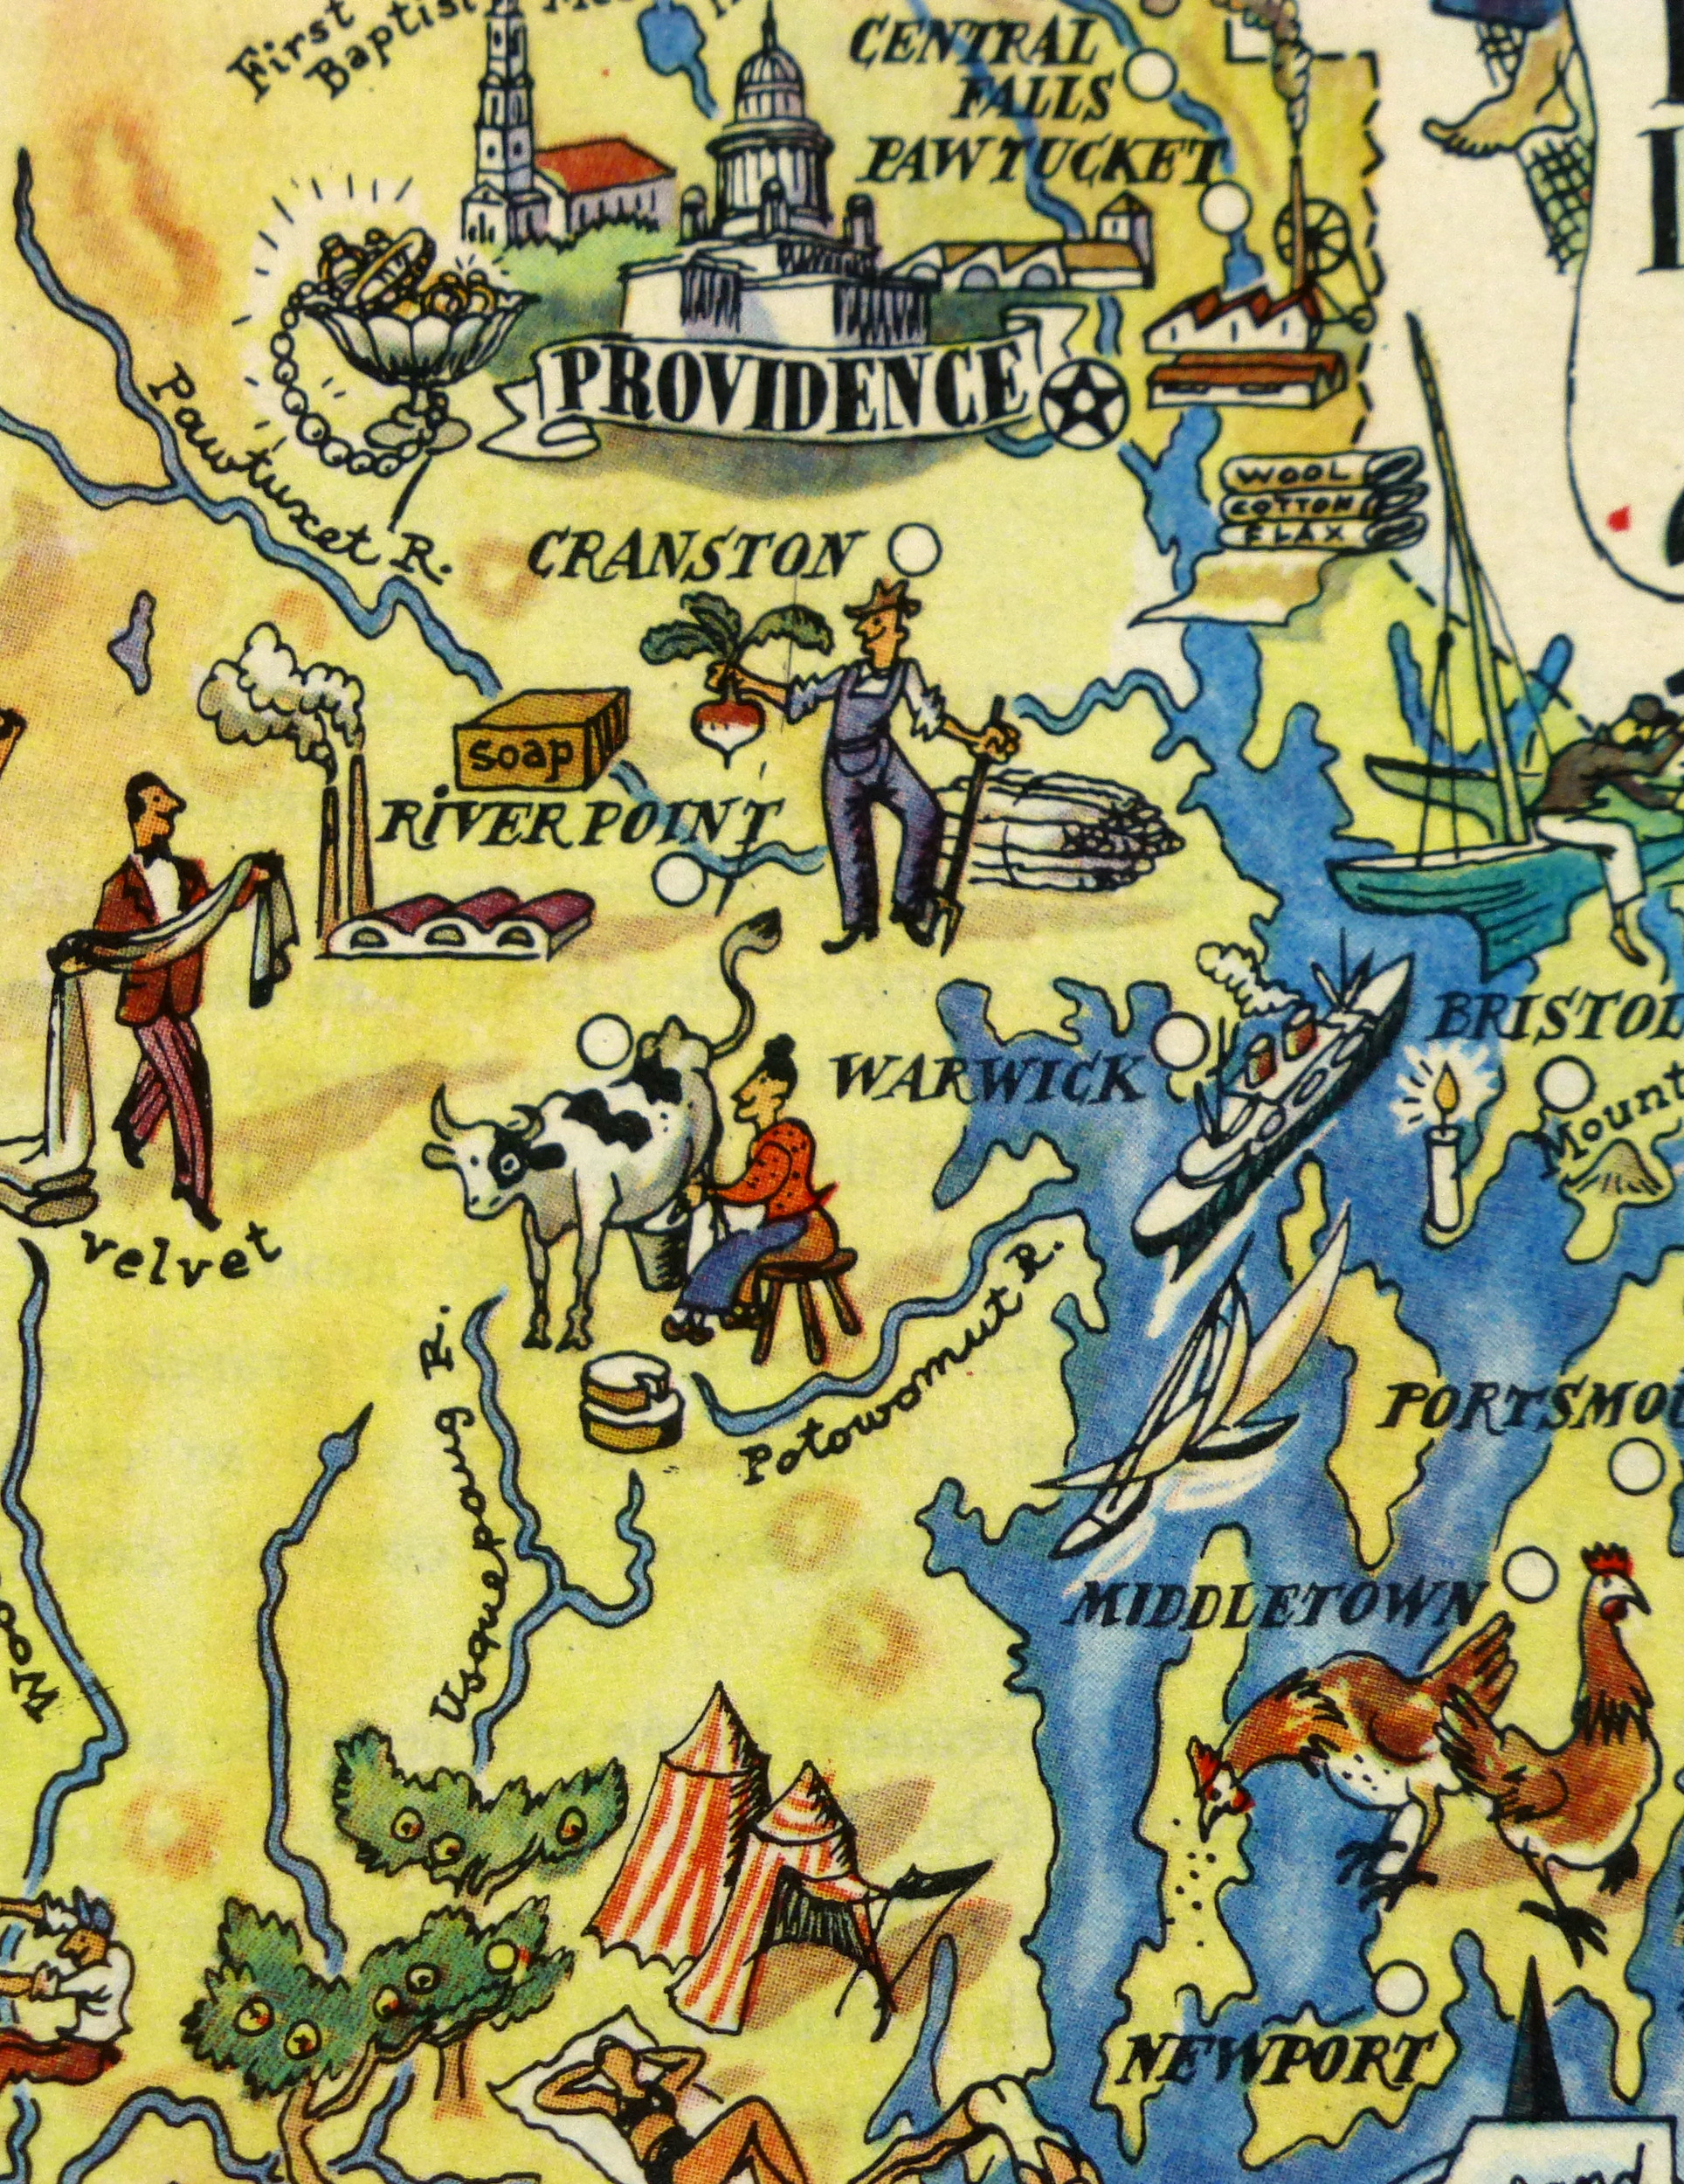 Rhode Island Pictorial Map, 1946-detail-6238K